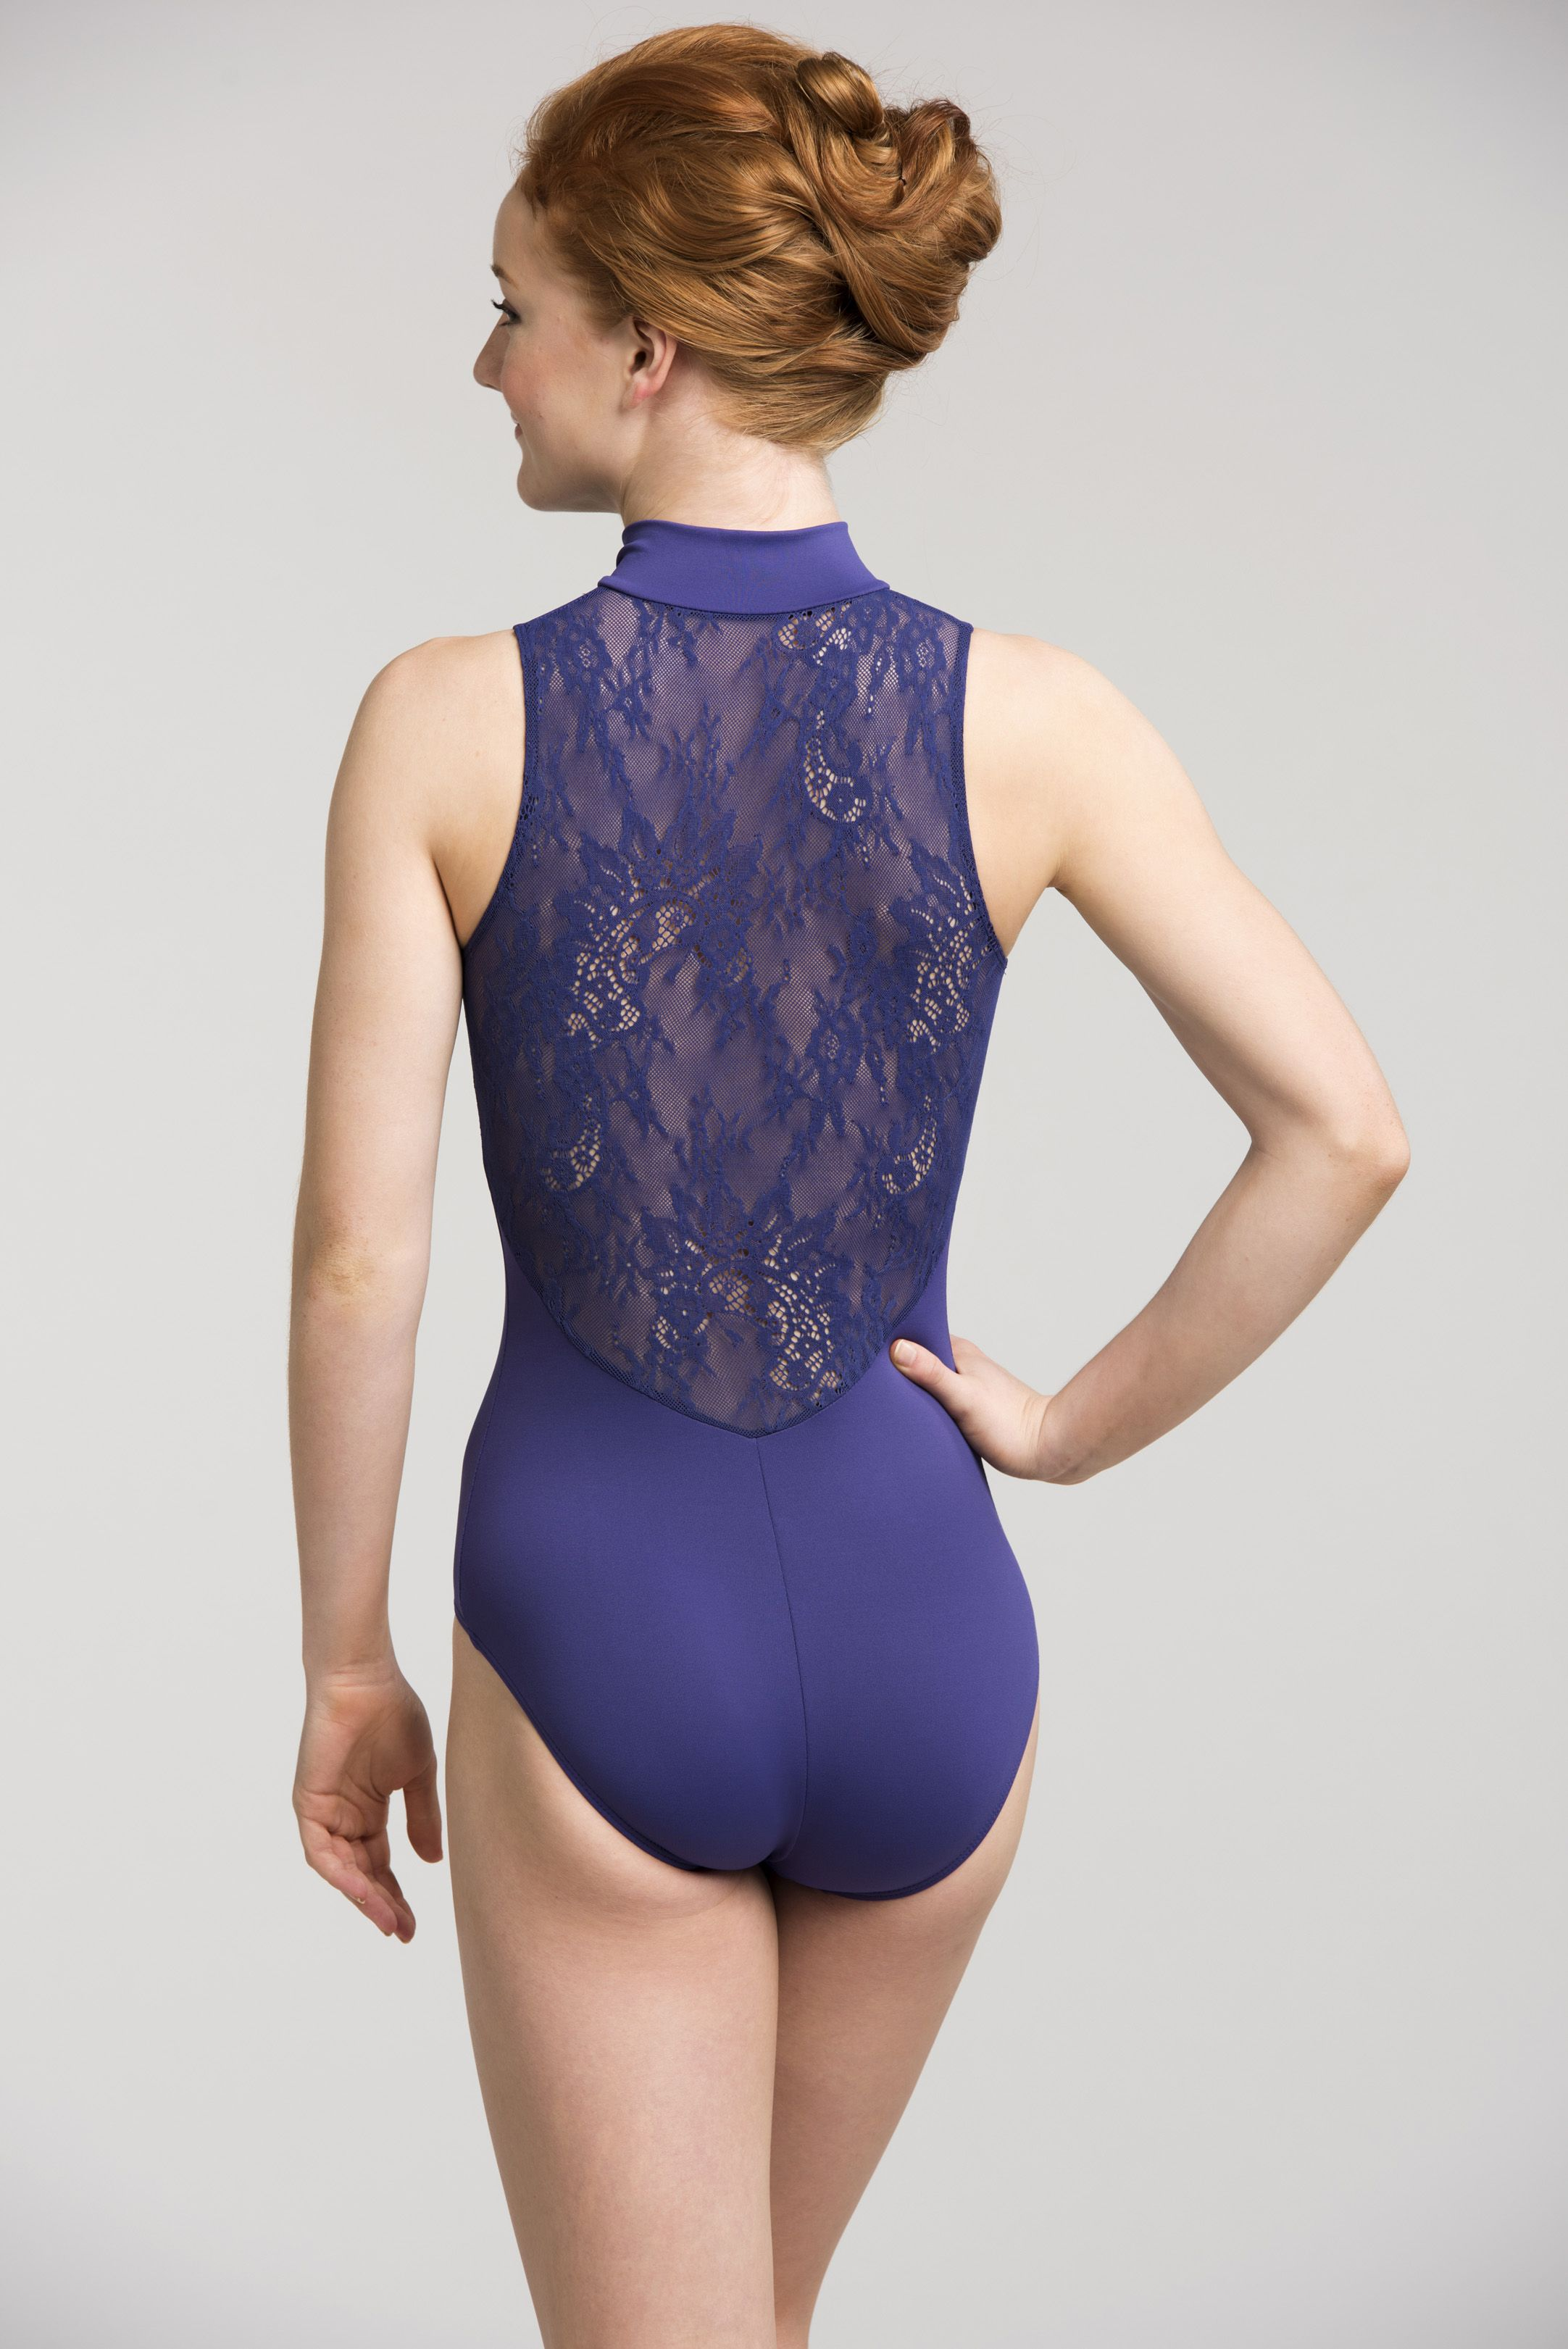 9f0c84354812 Make a bold statement in our fun purple zip front leotard with Kara Lace!  Beautiful in class and on stage.